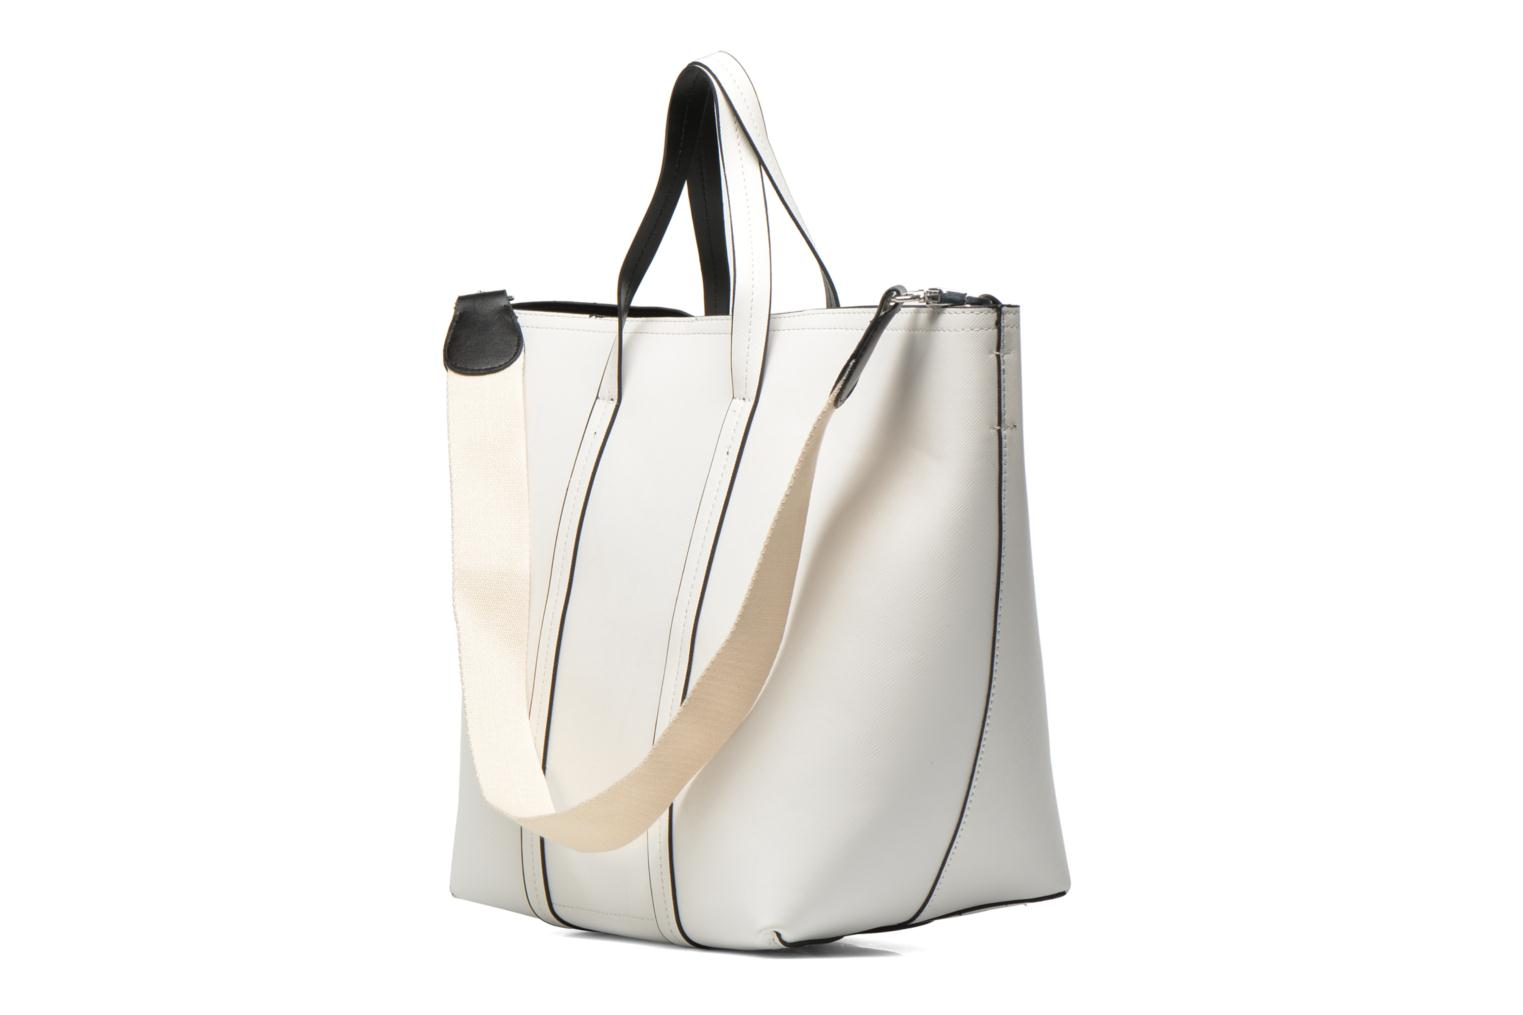 Tiffany Shopping bag White/black